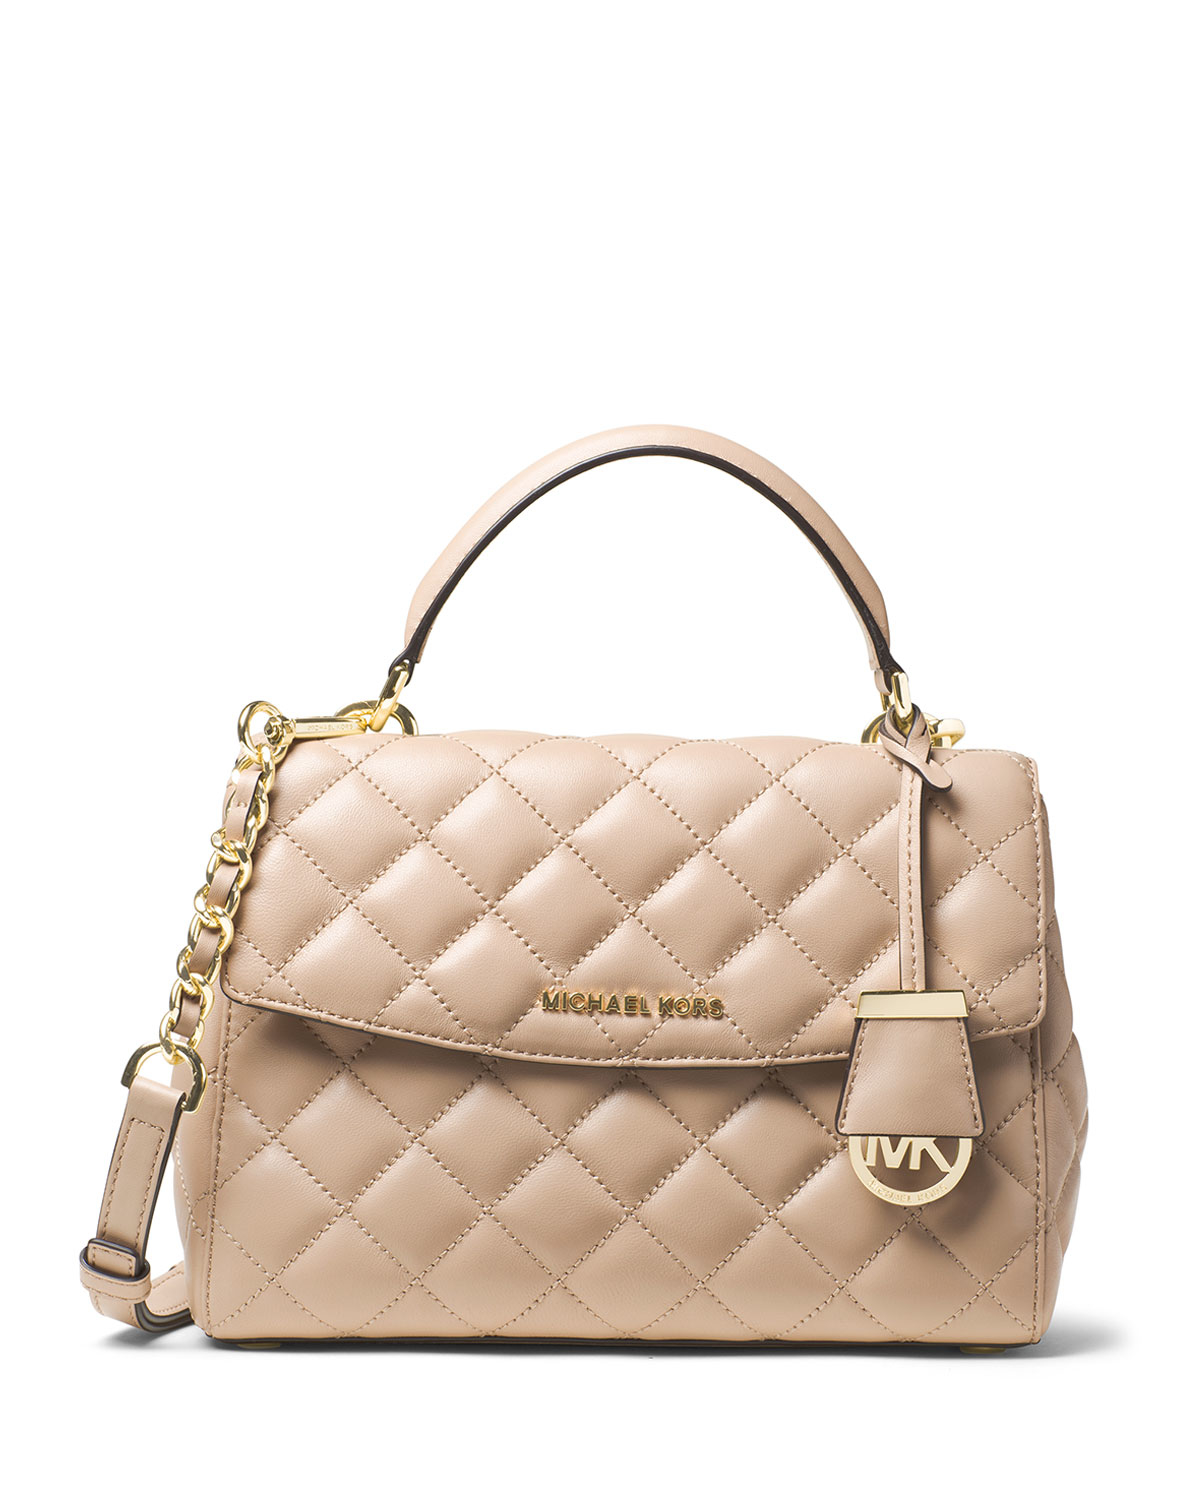 83c981ff96bf0 Lyst - MICHAEL Michael Kors Ava Small Quilted Leather Satchel Bag in ...